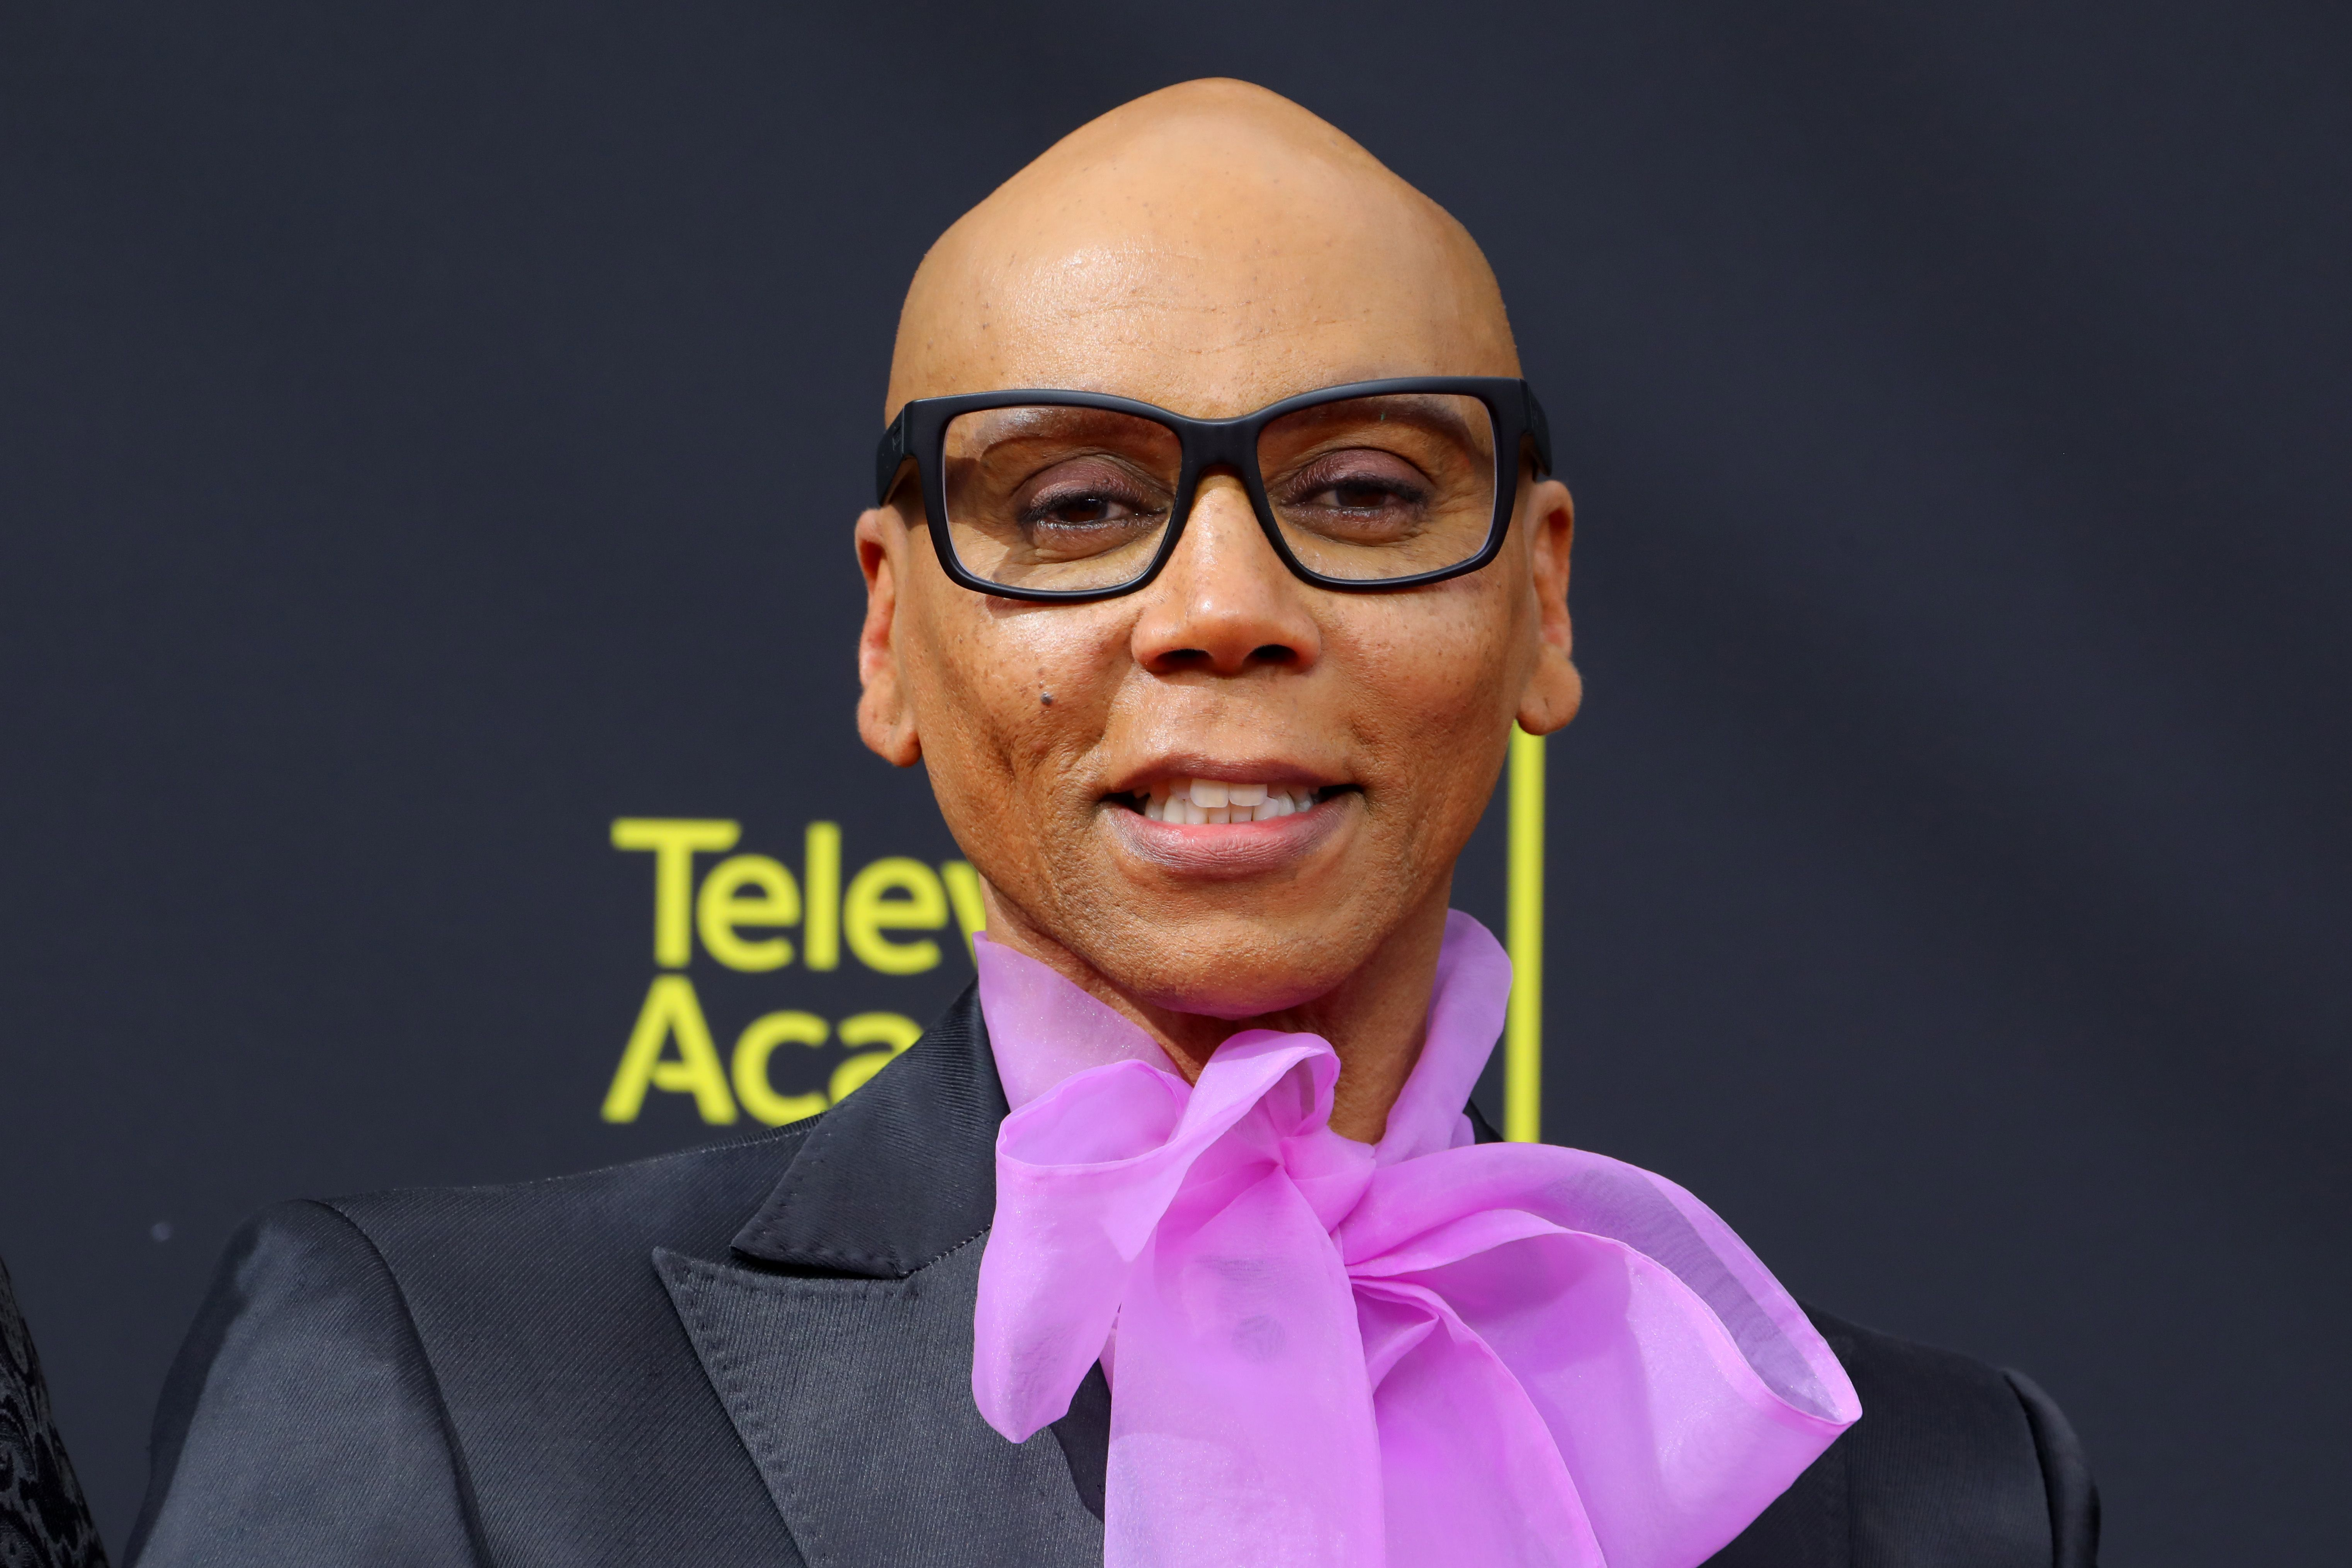 RuPaul on why Meghan Markle couldn't appear on Drag Race UK